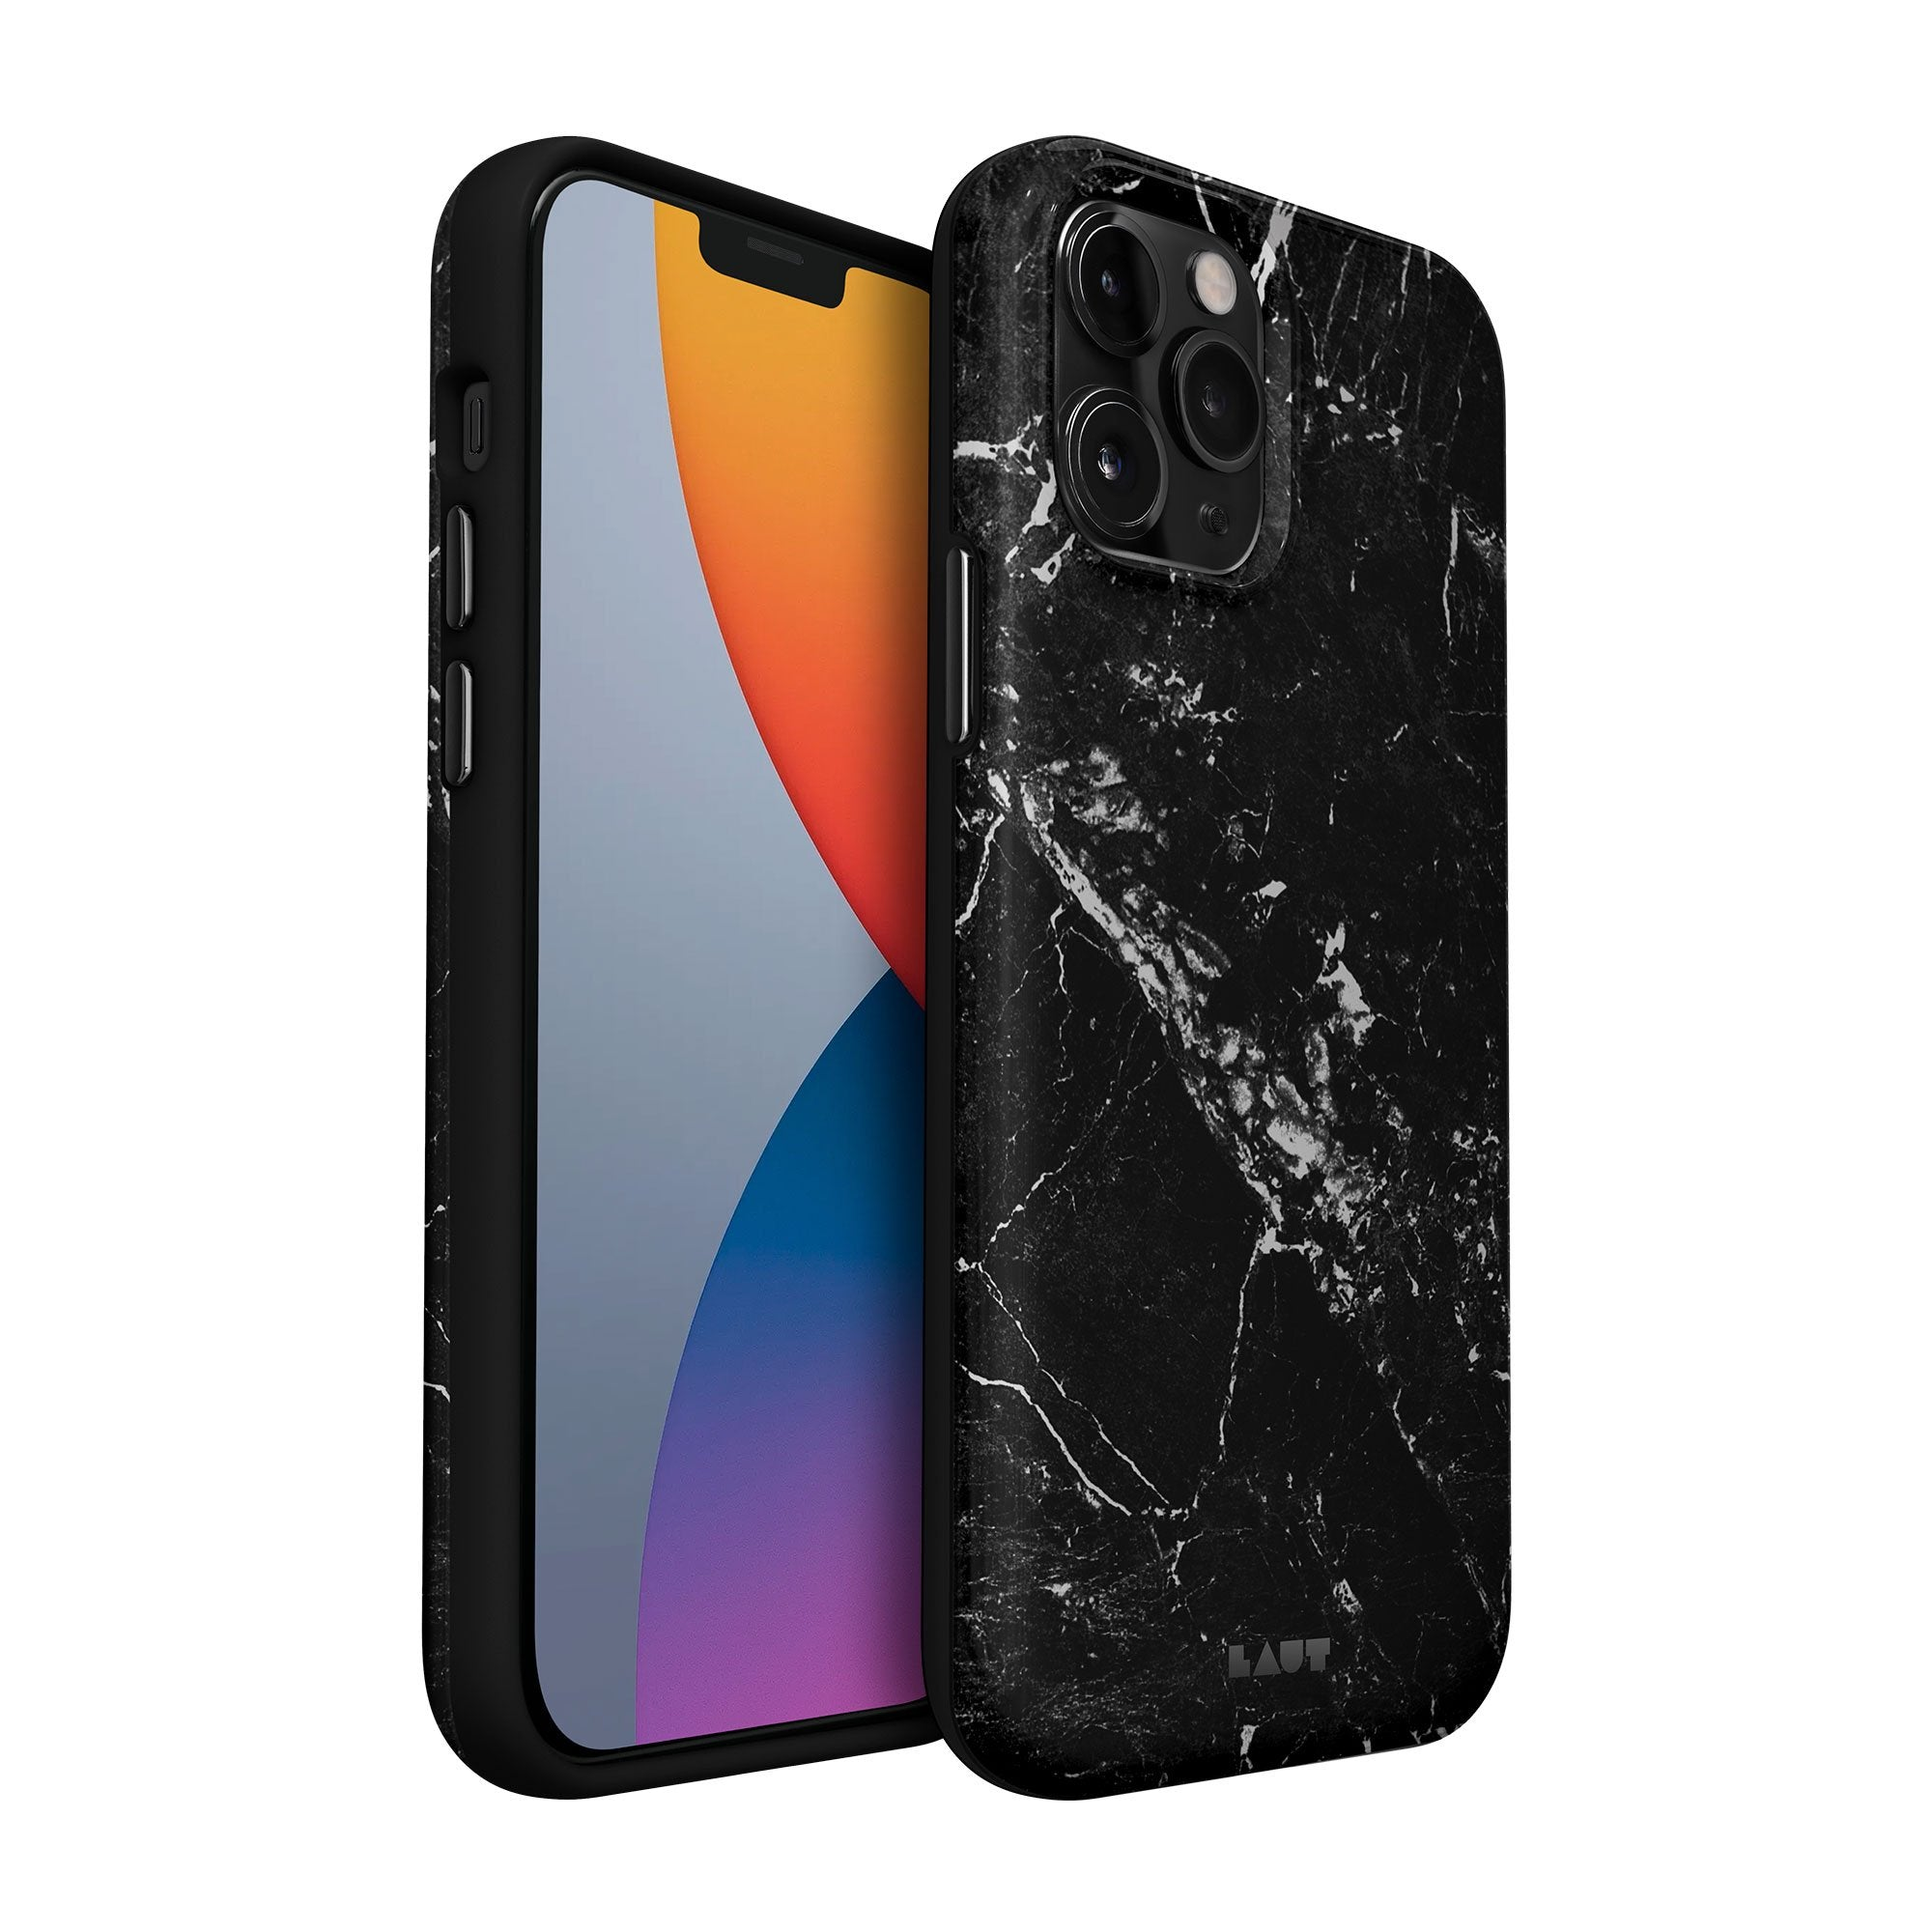 HUEX ELEMENTS case for iPhone 12 series